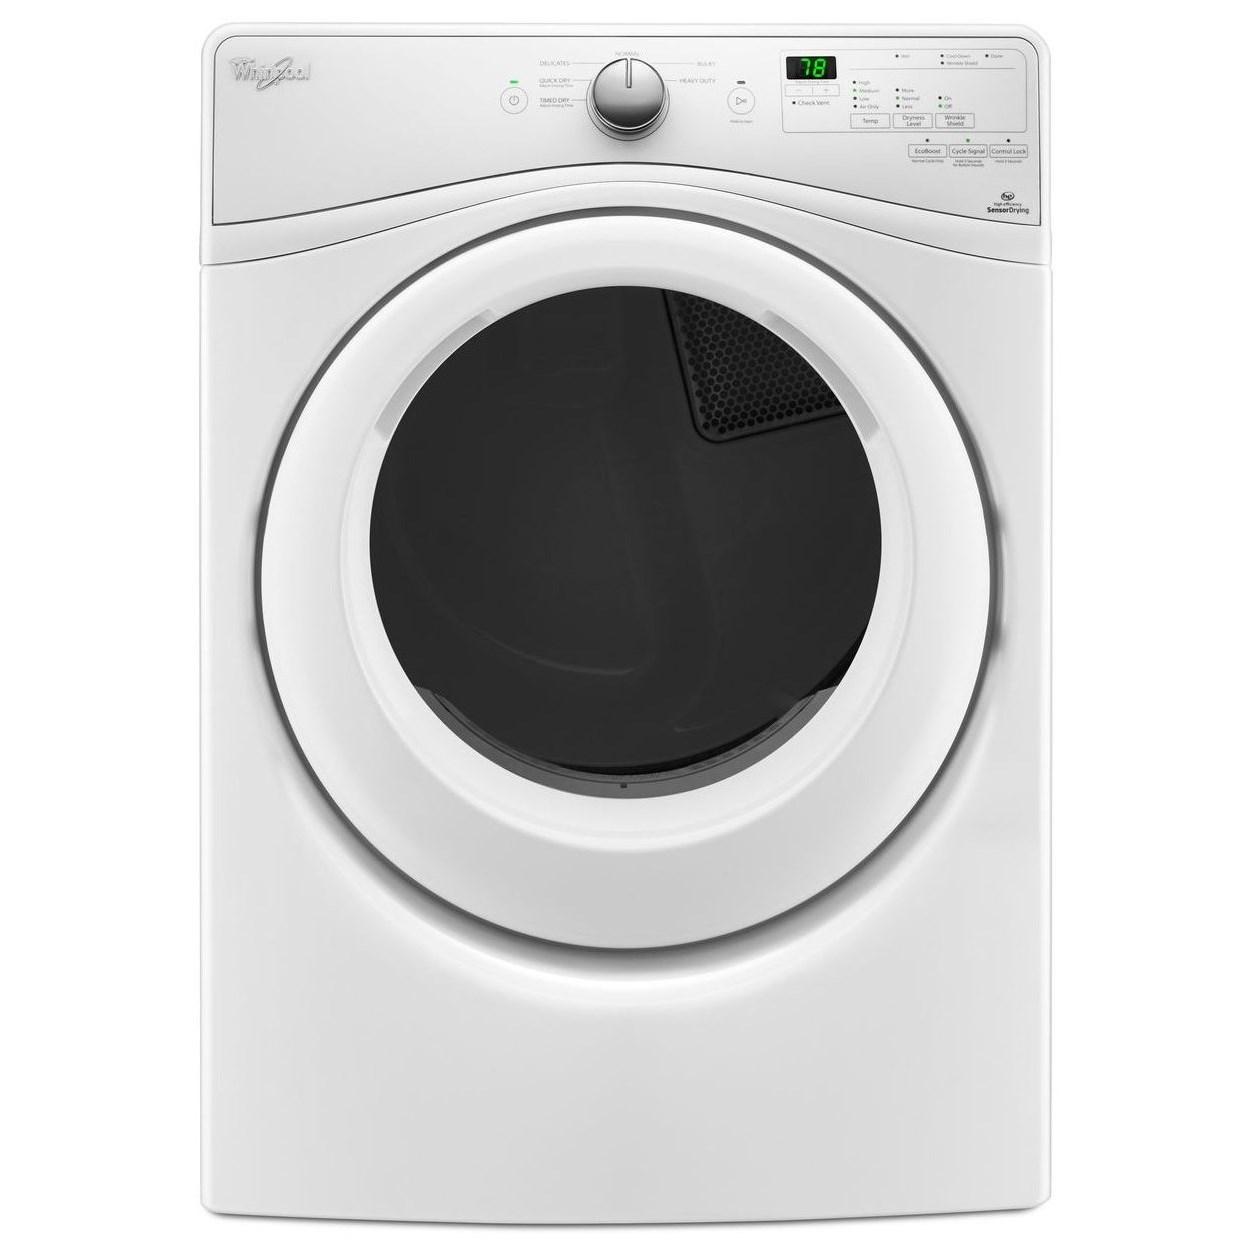 Whirlpool Gas Dryers 7.4 cu. ft. Long Vent Front Load Gas Dryer - Item Number: WGD7590FW